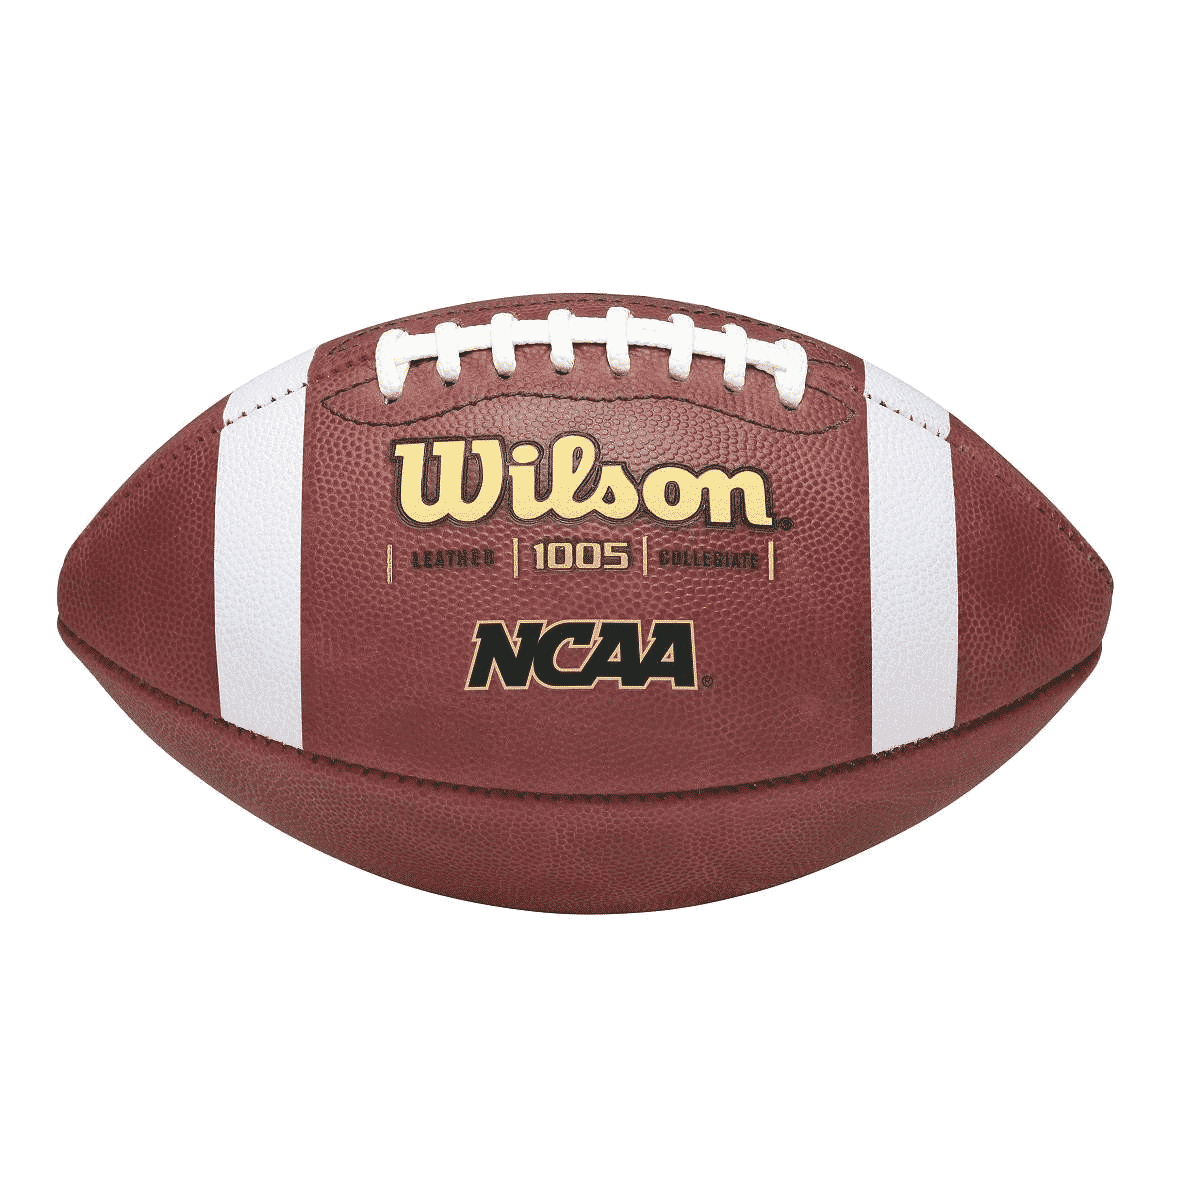 Hyundai Sun Bowl Tickets | Sun Bowl Stadium Hotels